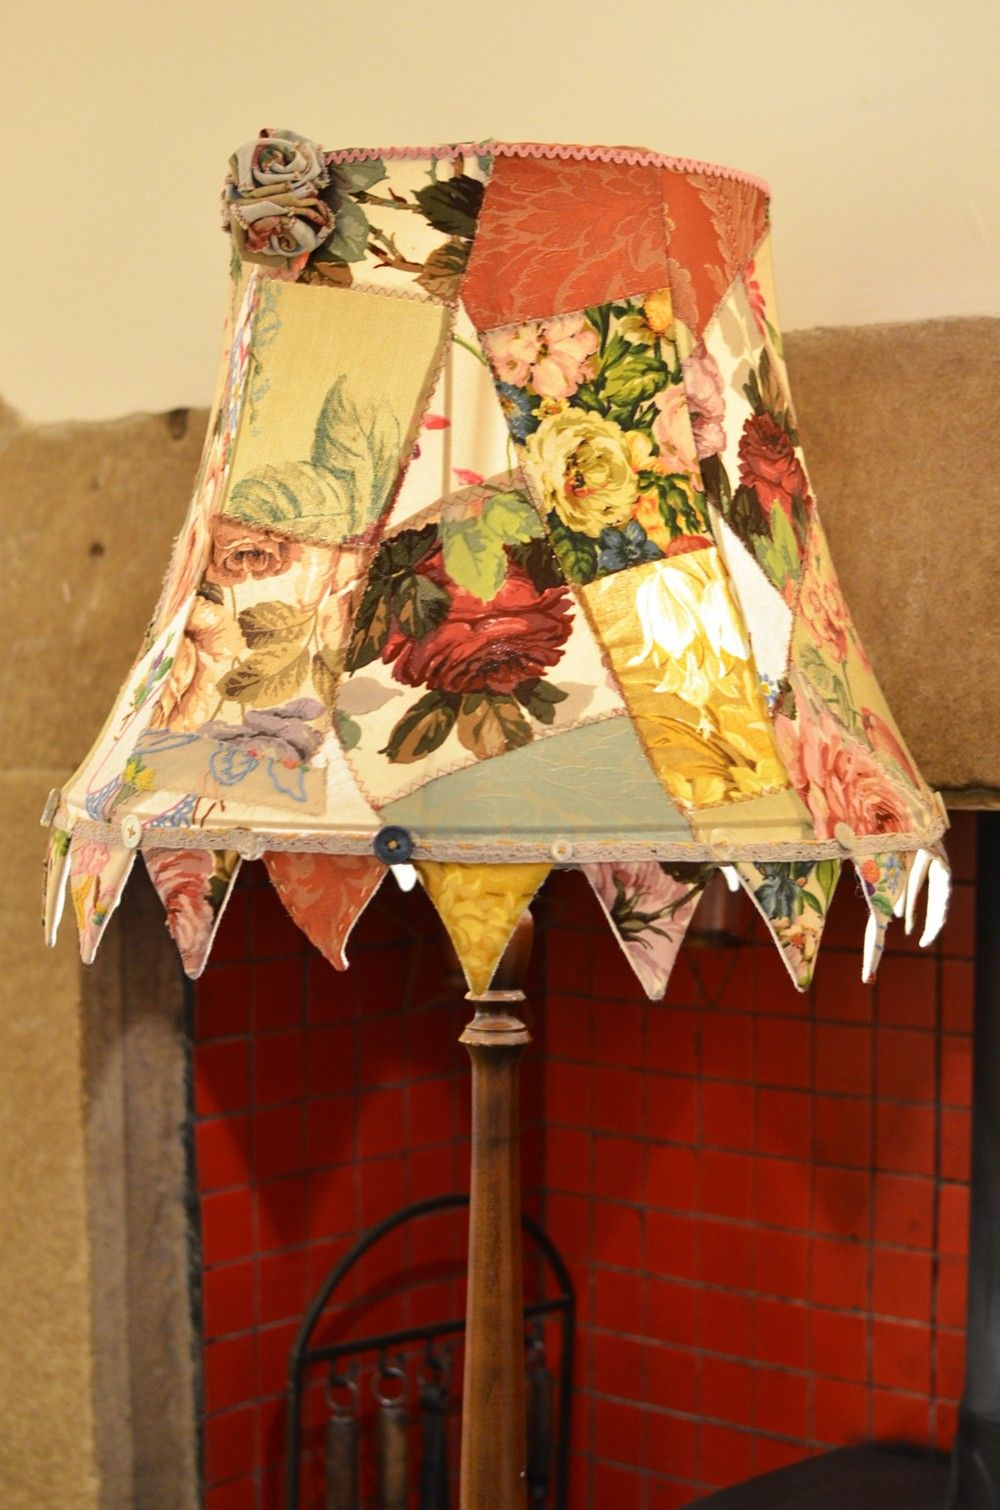 Patchwork Bunting Lampshade Radiance Vintage Lampshades Upcycle Decor Diy Lamp Shade